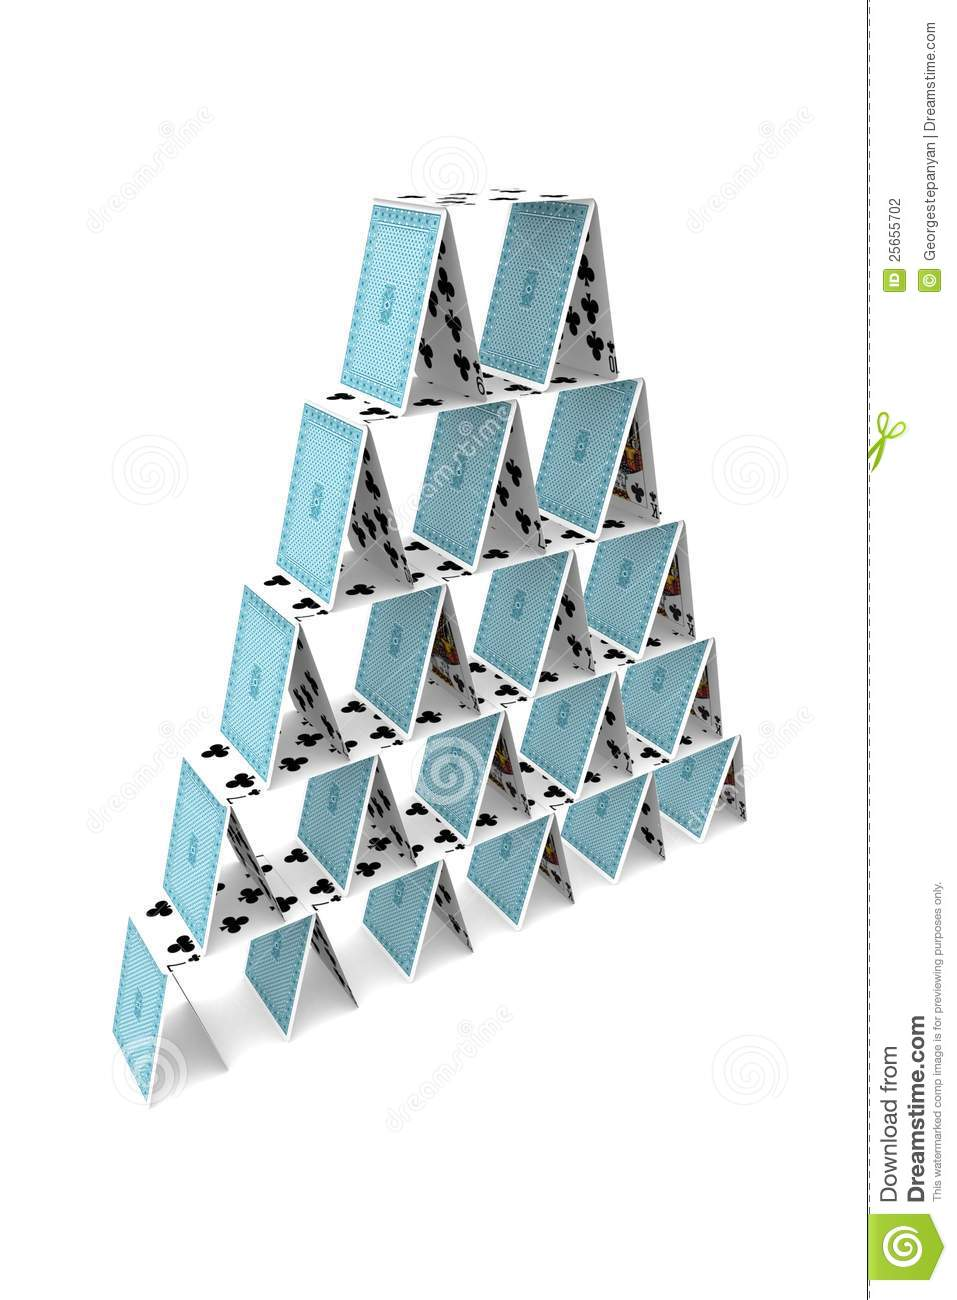 jeu de carte pyramide Pyramid of playing cards stock illustration. Illustration of